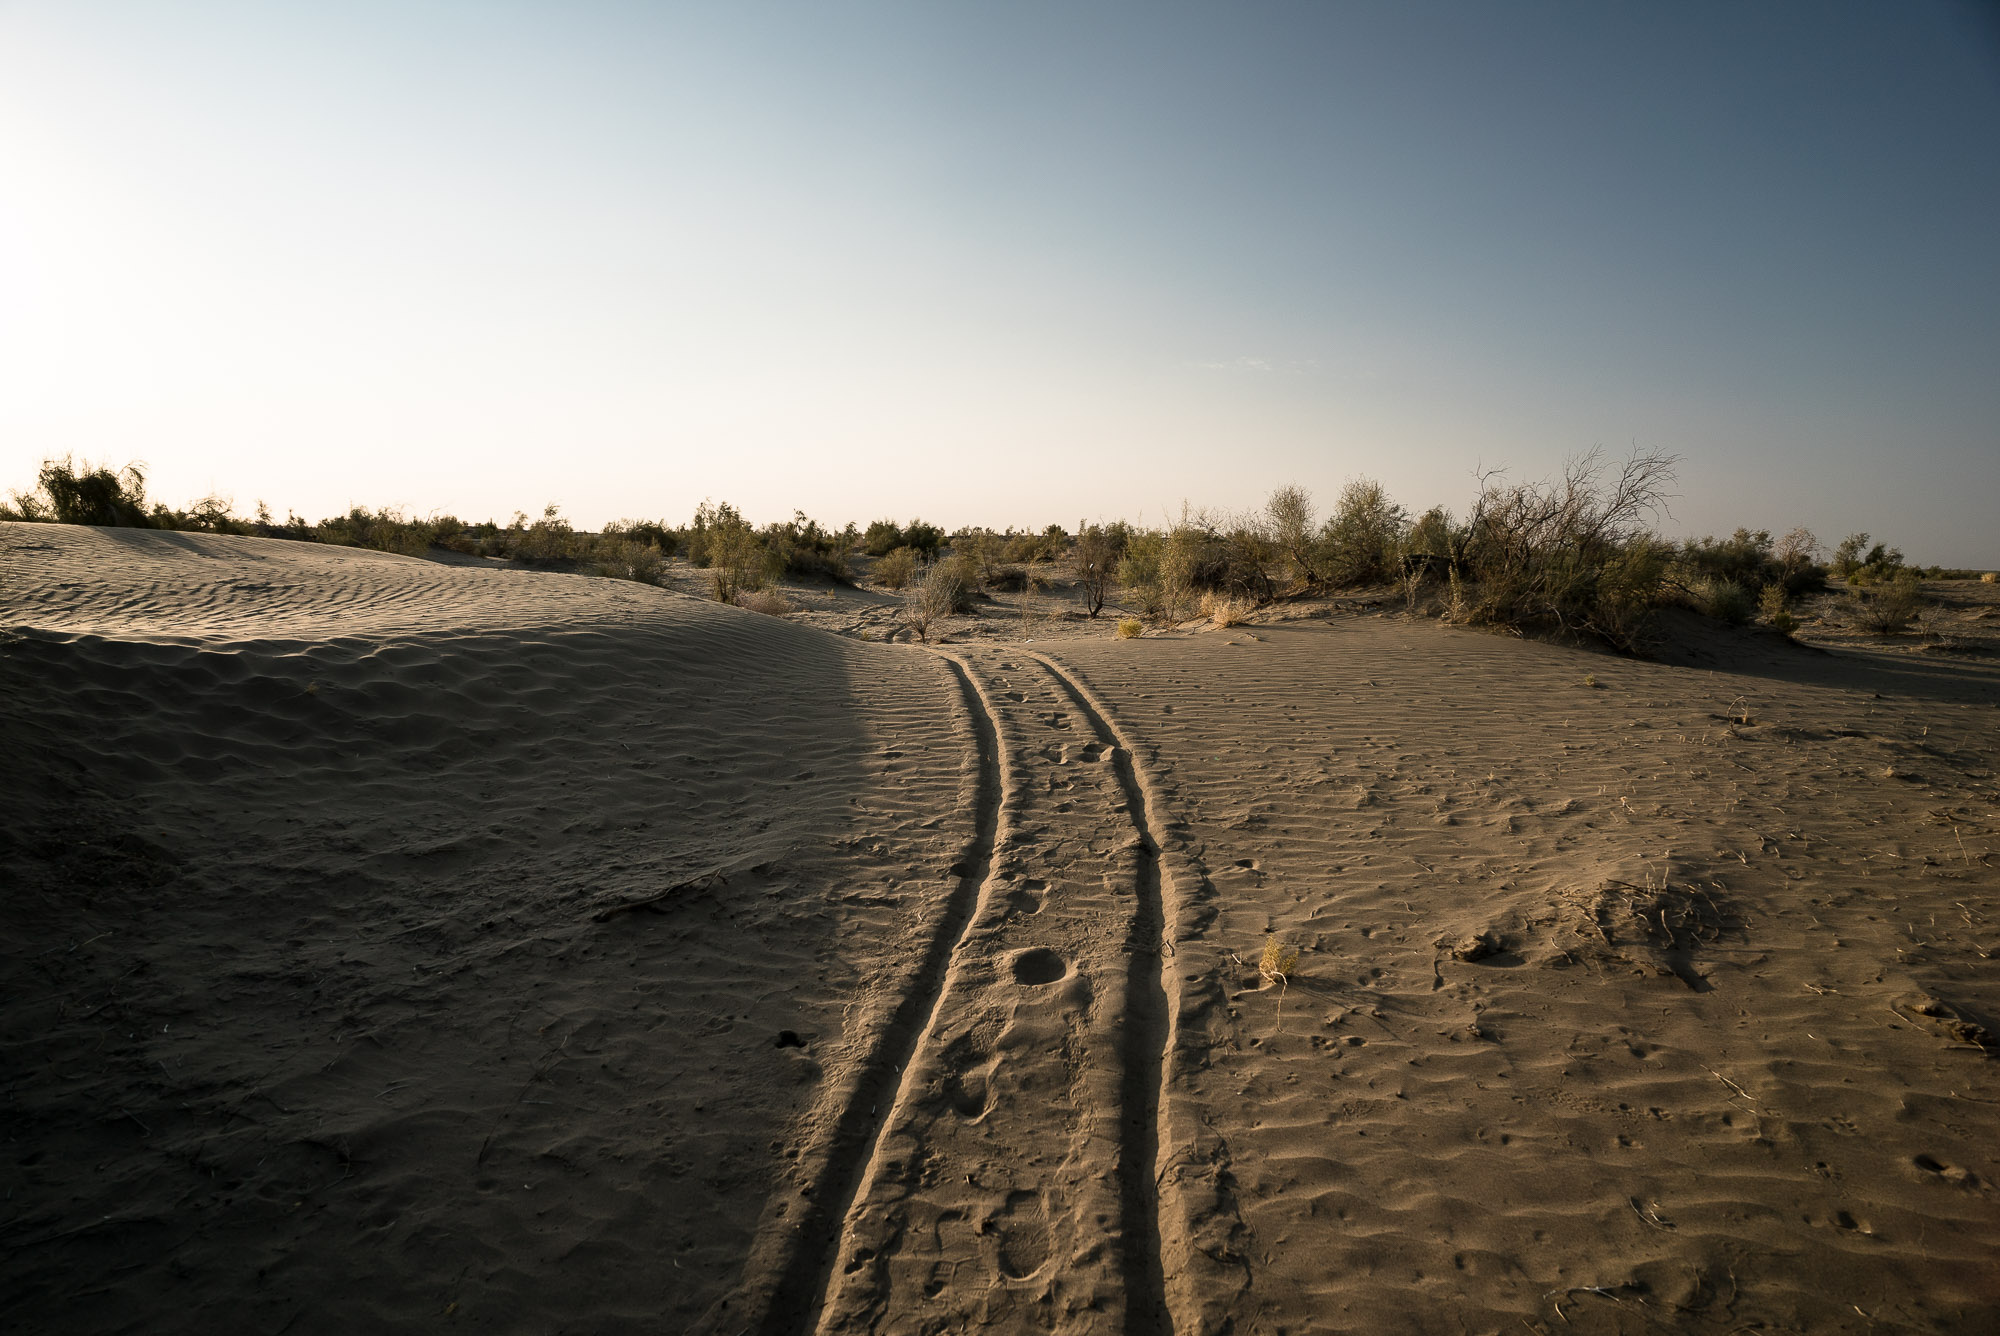 the Caboose's tracks